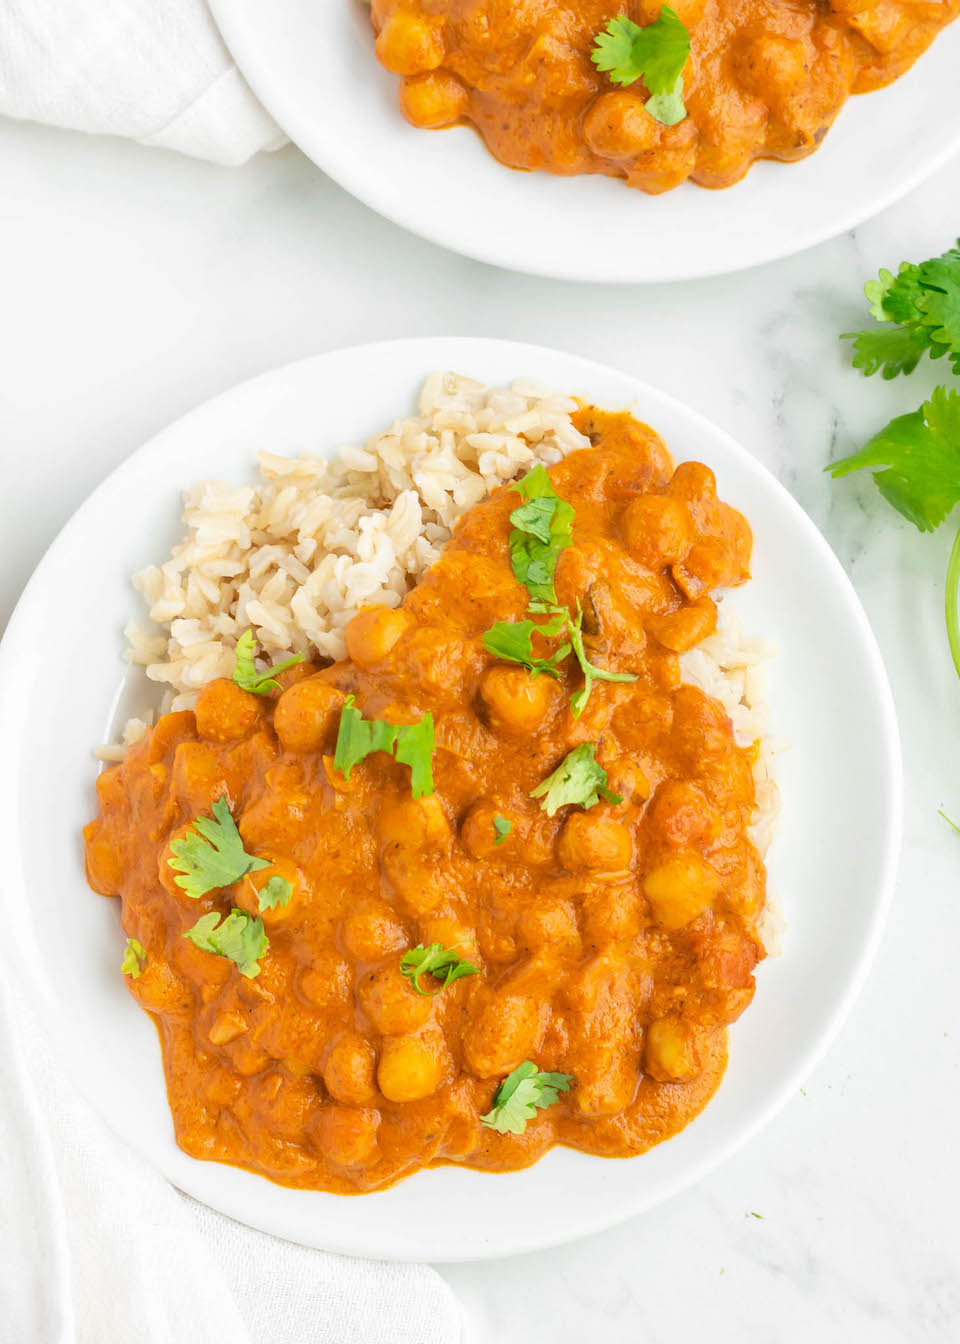 This Healthy Butter Chickpeas dish is a lightened-up, vegan and gluten free take on a classic Indian-style dish. You won't miss the chicken herre, this homemade dairy free curry is rich, creamy and satisfying made with coconut milk, tomatoes, chickpeas and a secret ingredient - almond butter! This healthy recipe is quick and easy to make for the perfect weeknight dinner any night of the week. #healthydinner #easyrecipe #glutenfree #vegan #dairyfree